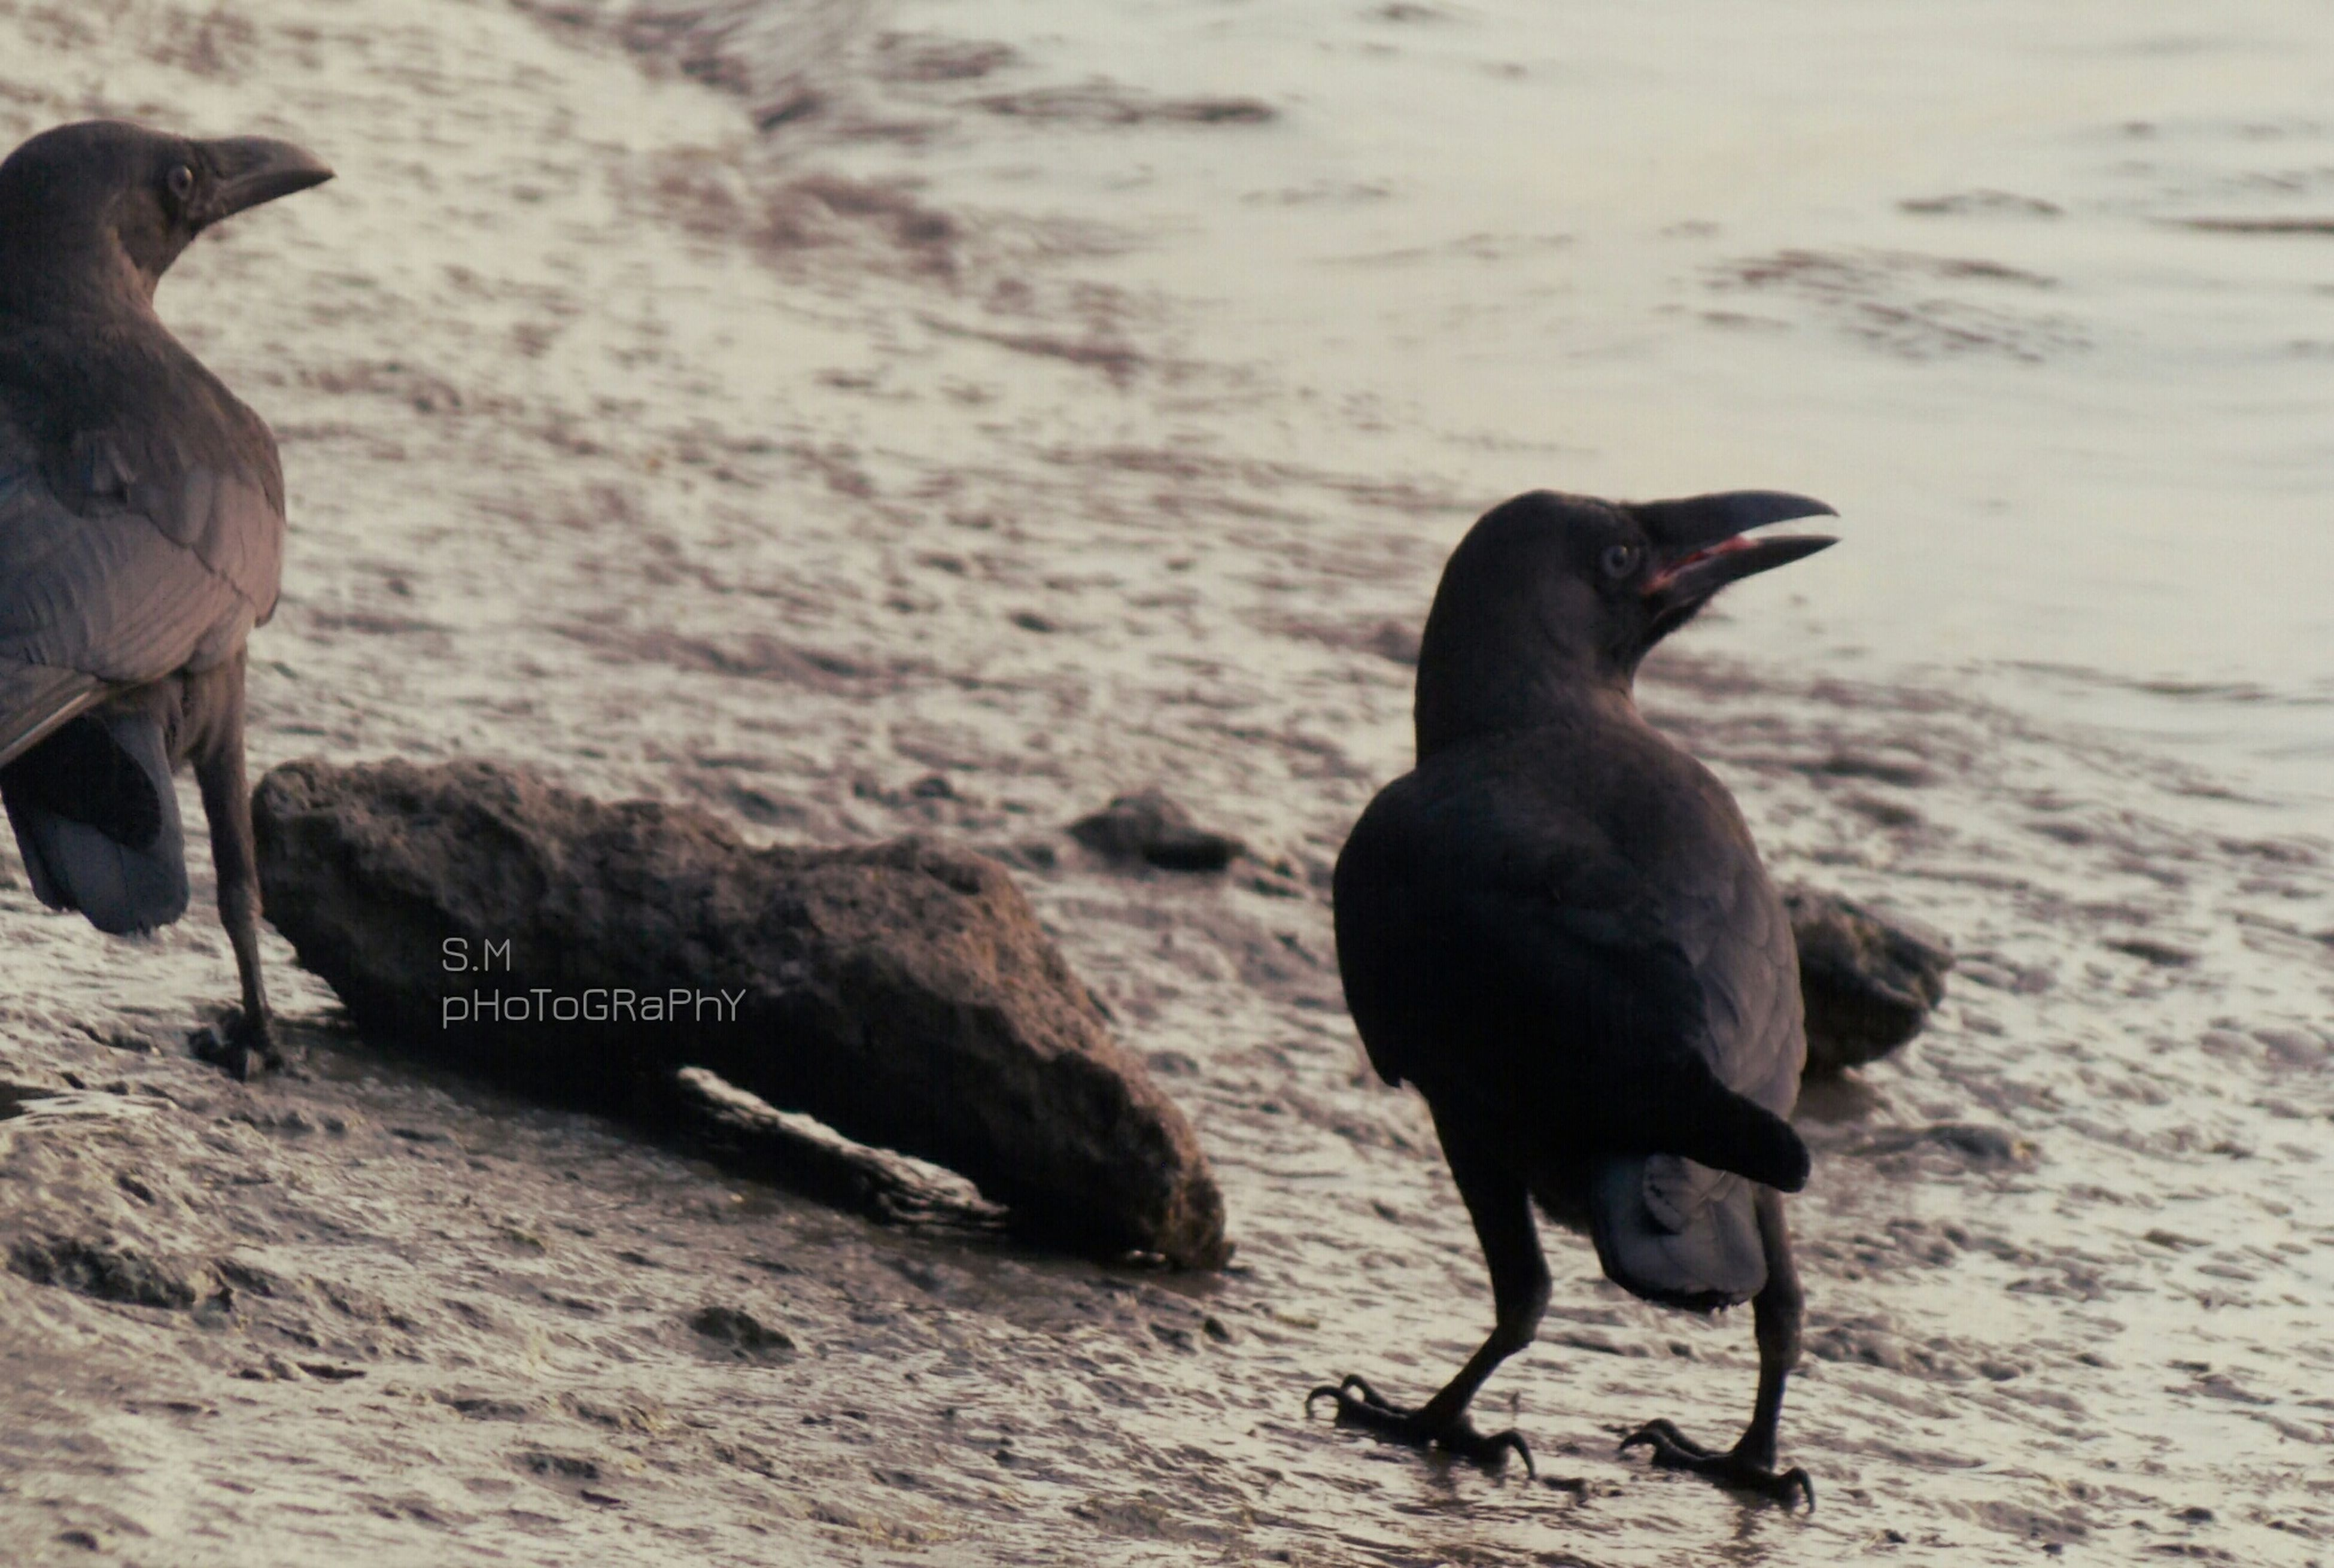 animal themes, one animal, water, animals in the wild, black color, bird, wildlife, sea, beach, two animals, standing, full length, domestic animals, focus on foreground, nature, dog, side view, mammal, shore, zoology